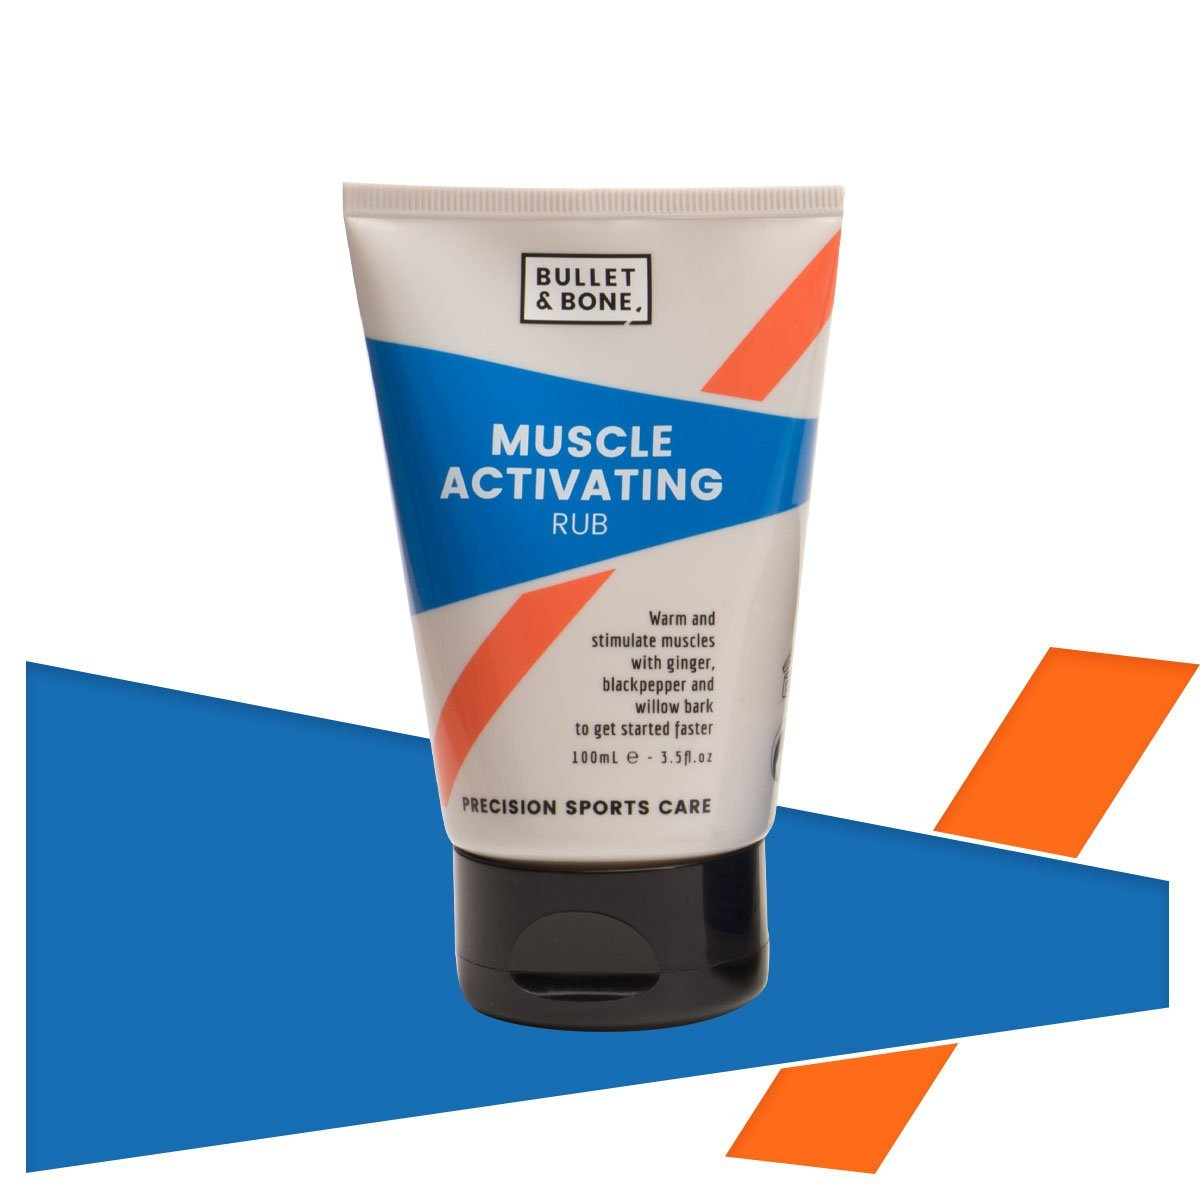 Bullet & Bone Muscle Activating Rub - www.therugbyshop.com